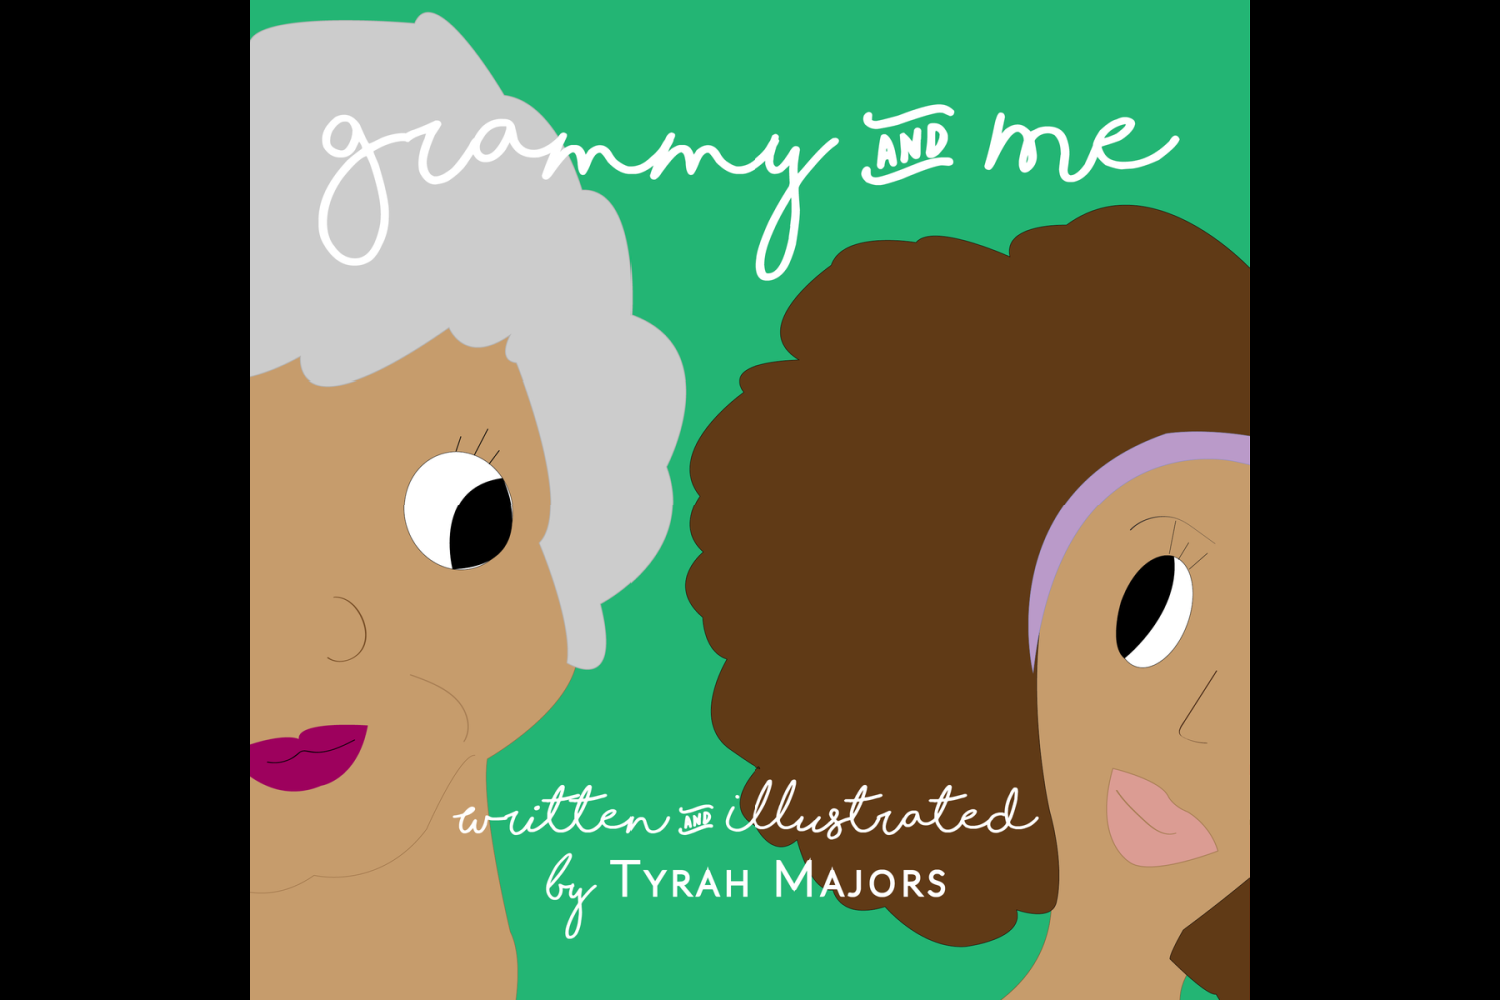 Tyrah Majors wrote and illustrated { }'Grammy and Me' a book that celebrates family. (Image: Tyrah Majors)